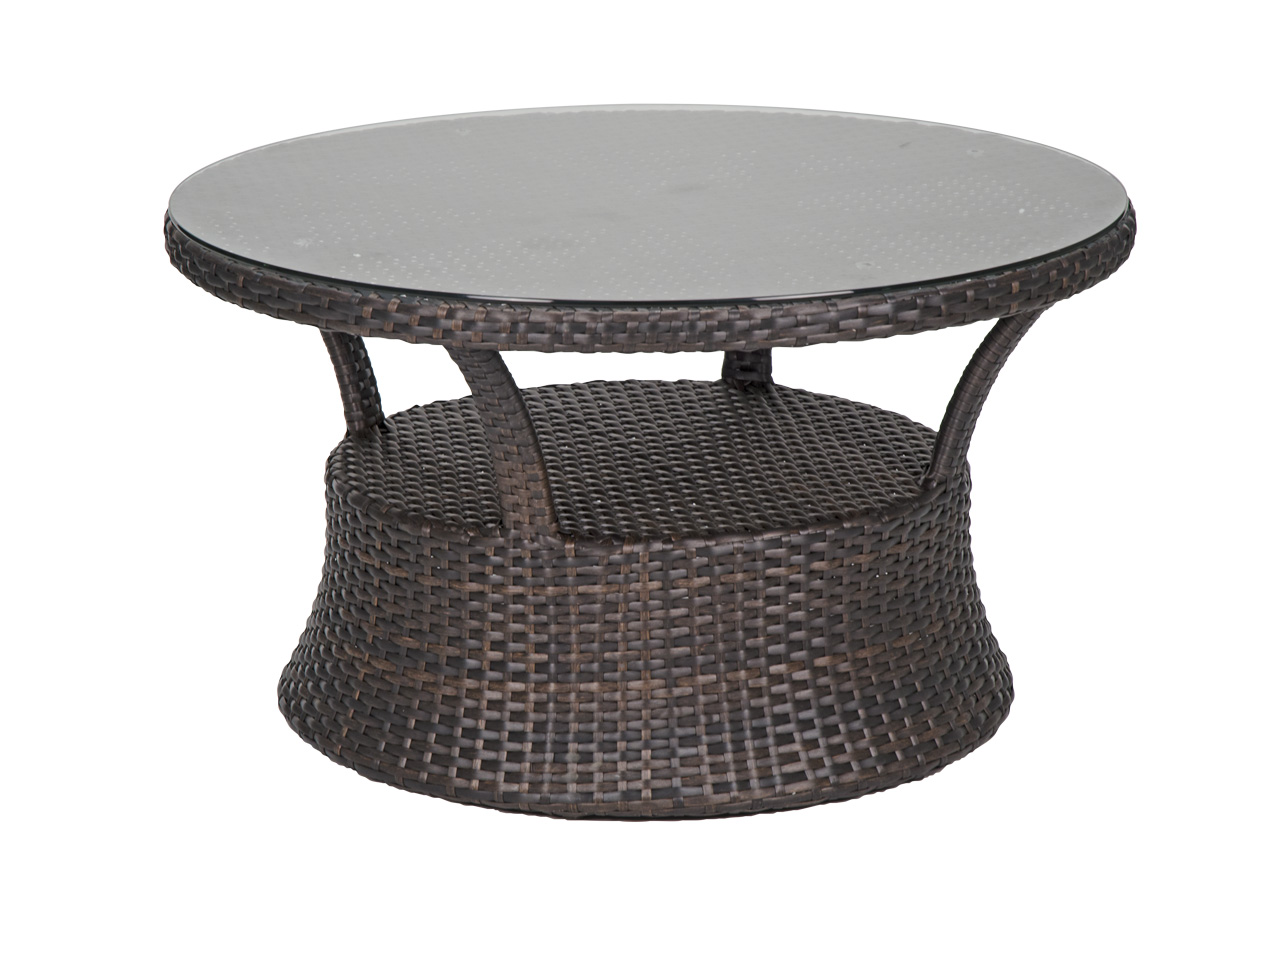 coffee and side tables fortunoff backyard wickr outdoor table resin san lucas round aluminum woven wicker glass top conversation nautical night light home clock dinette set tall